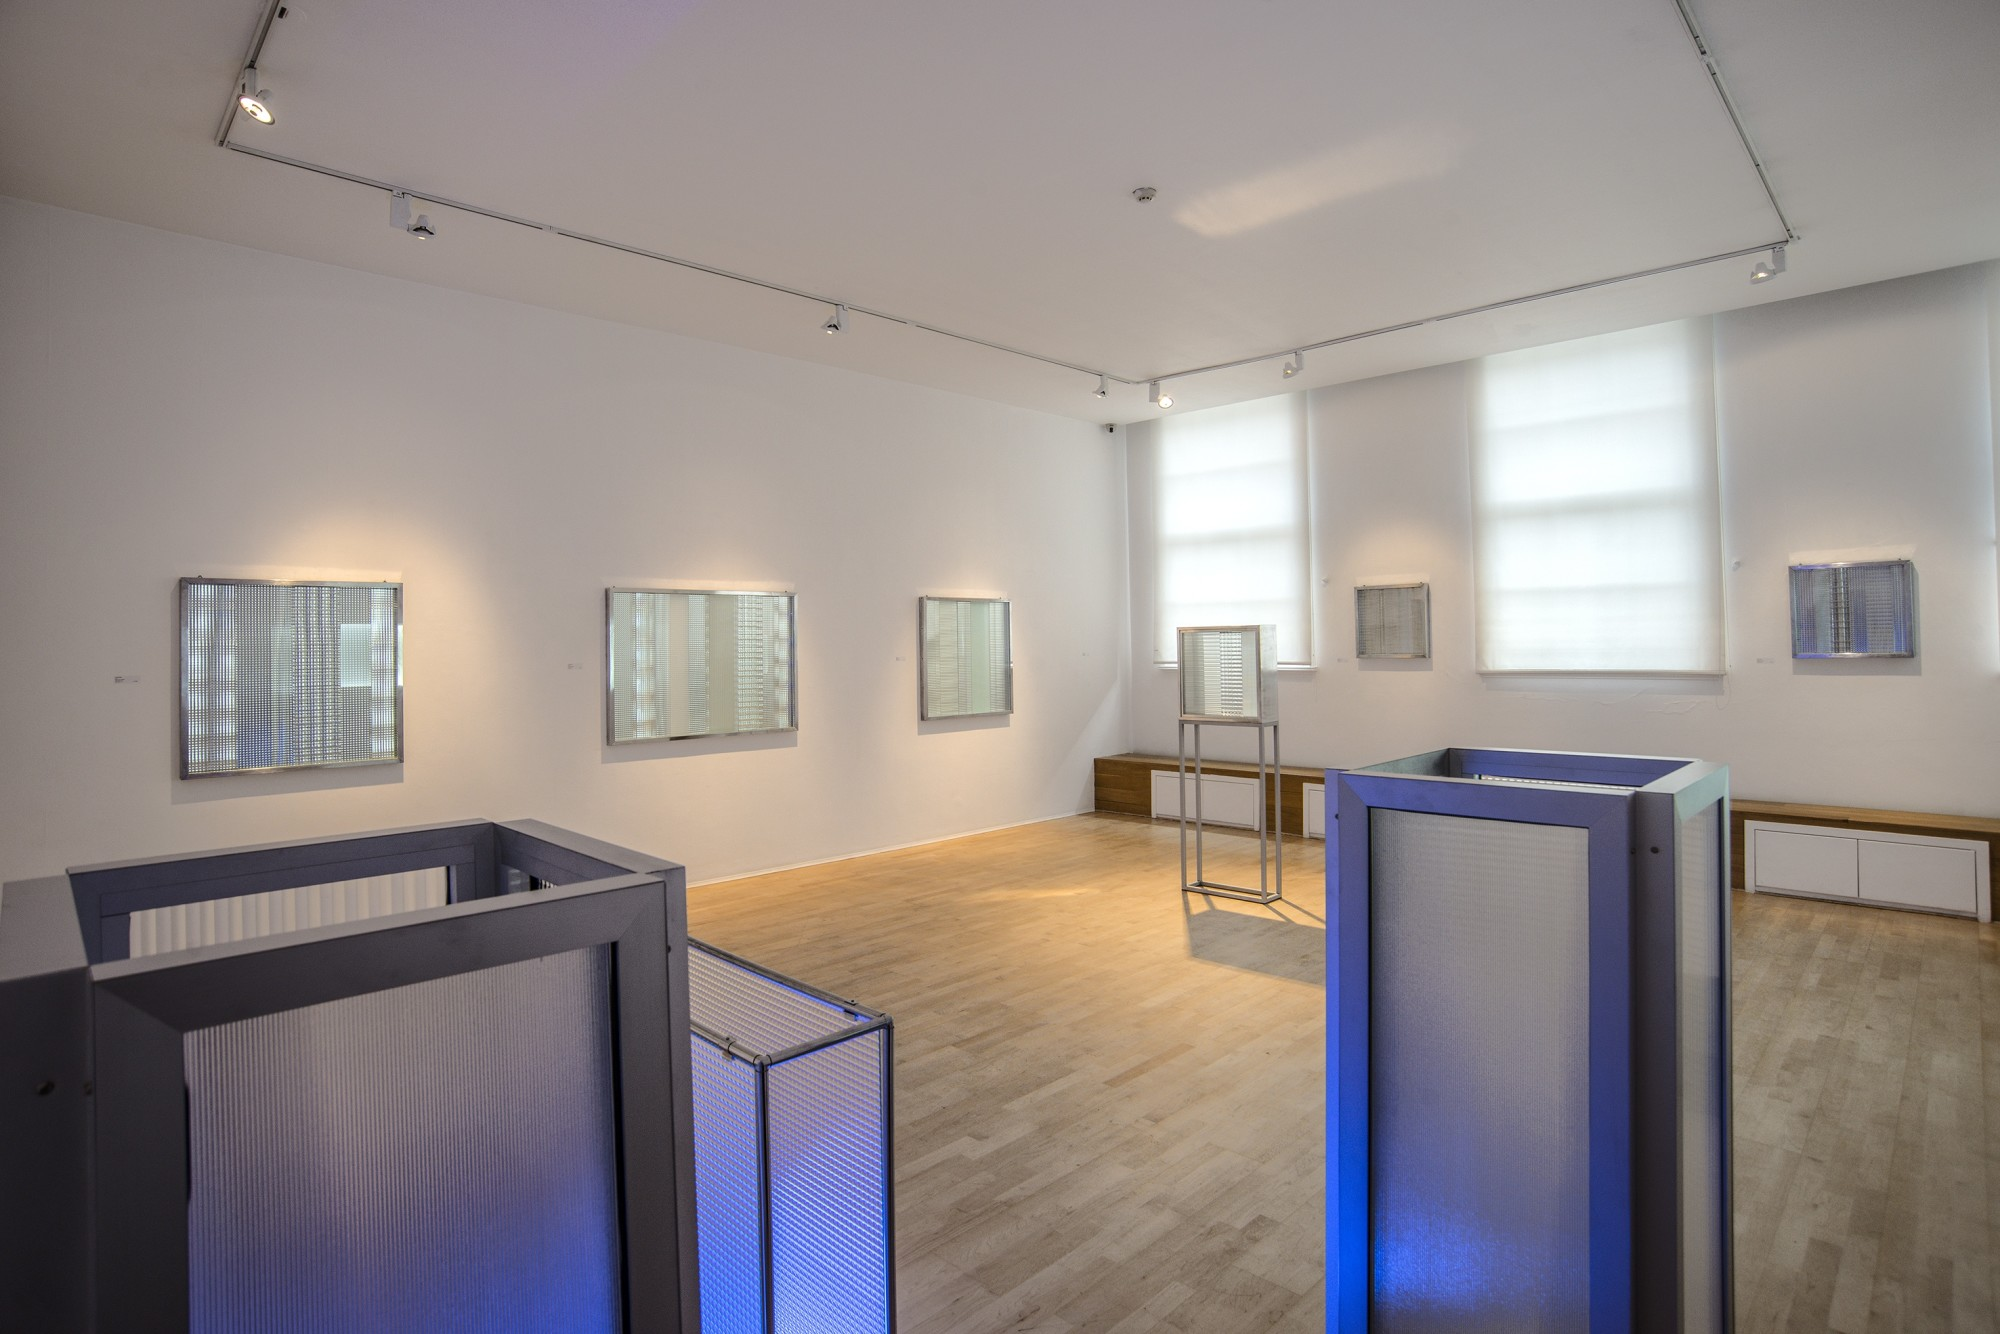 """<span class=""""link fancybox-details-link""""><a href=""""/exhibitions/58/works/image_standalone66/"""">View Detail Page</a></span><p>NANDA VIGO   CHRONOTOPS   10 SEP - 24 OCT 2014   Installation View</p>"""